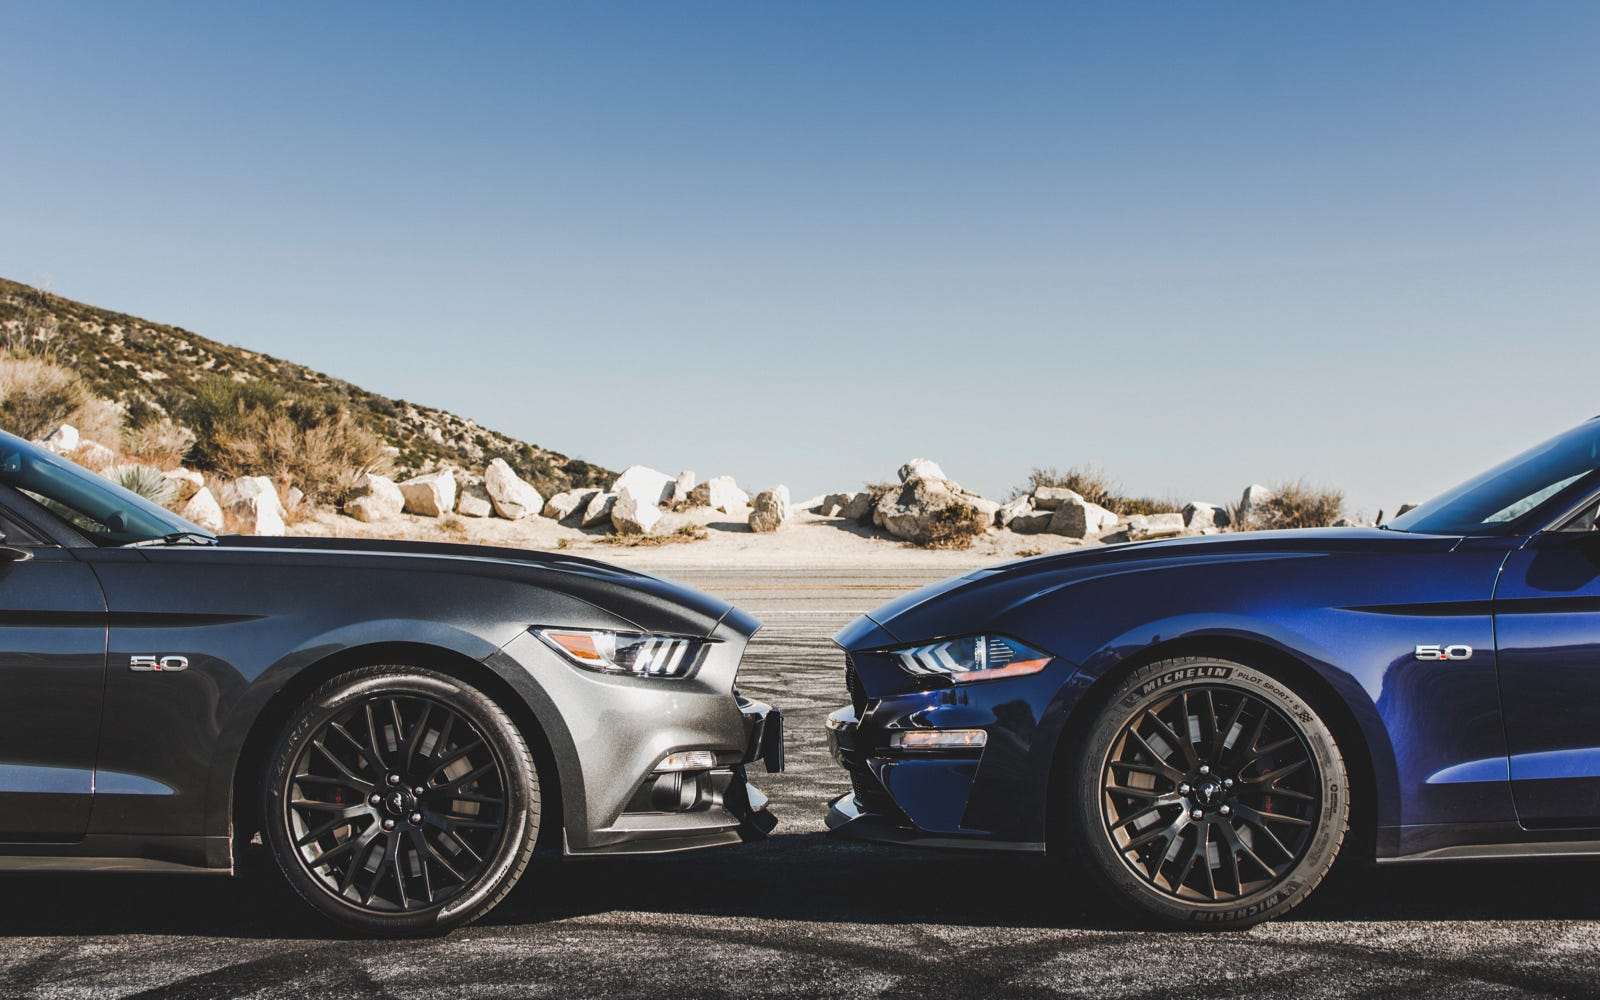 How The 2018 Ford Mustang GT Really Compares To The Last One